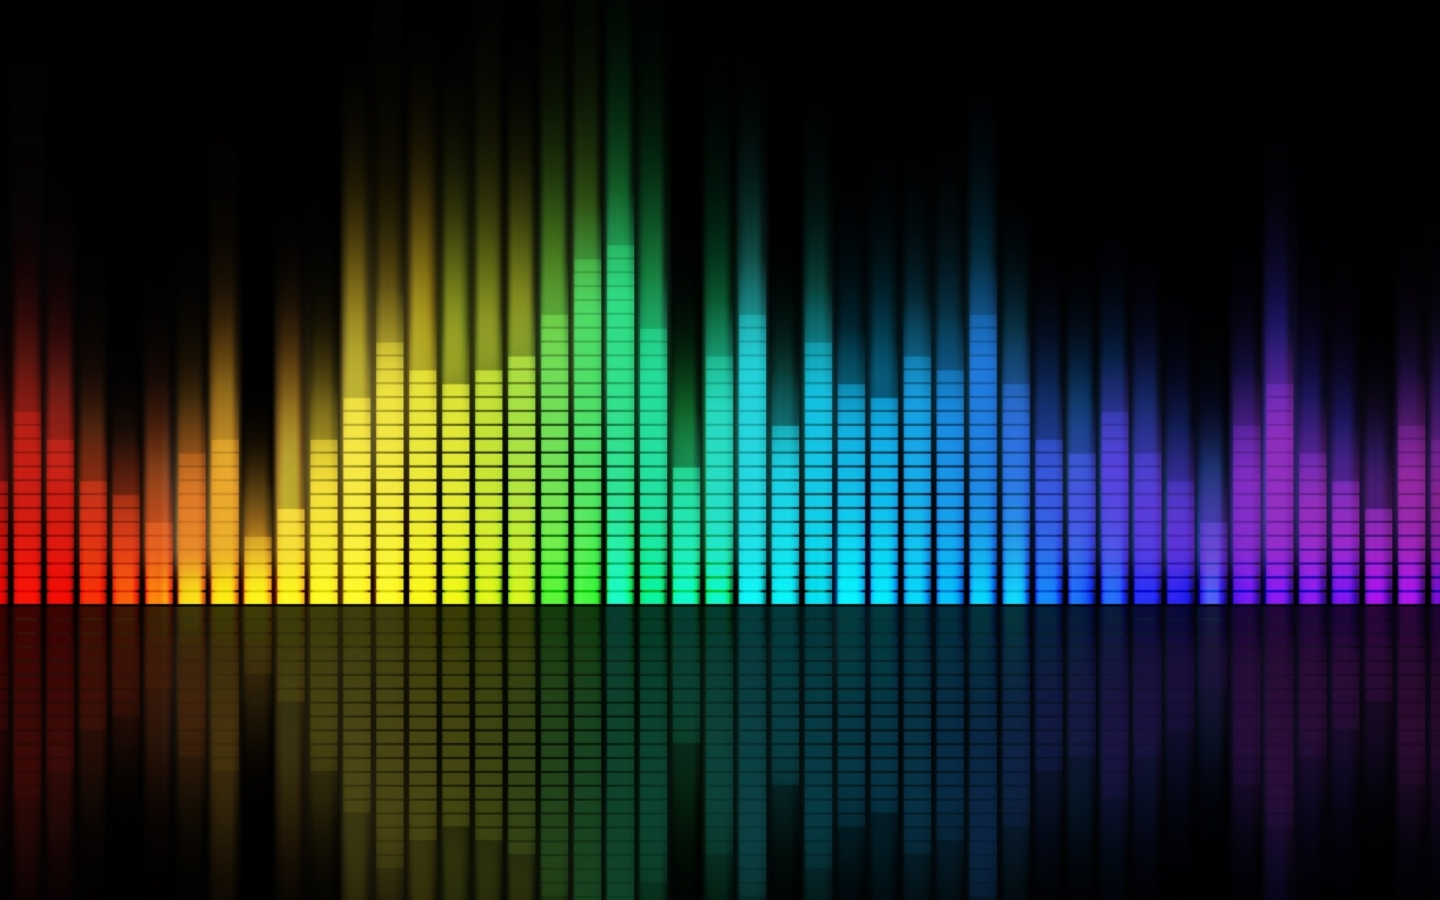 Download Music Equalizer Live Wallpaper Gallery